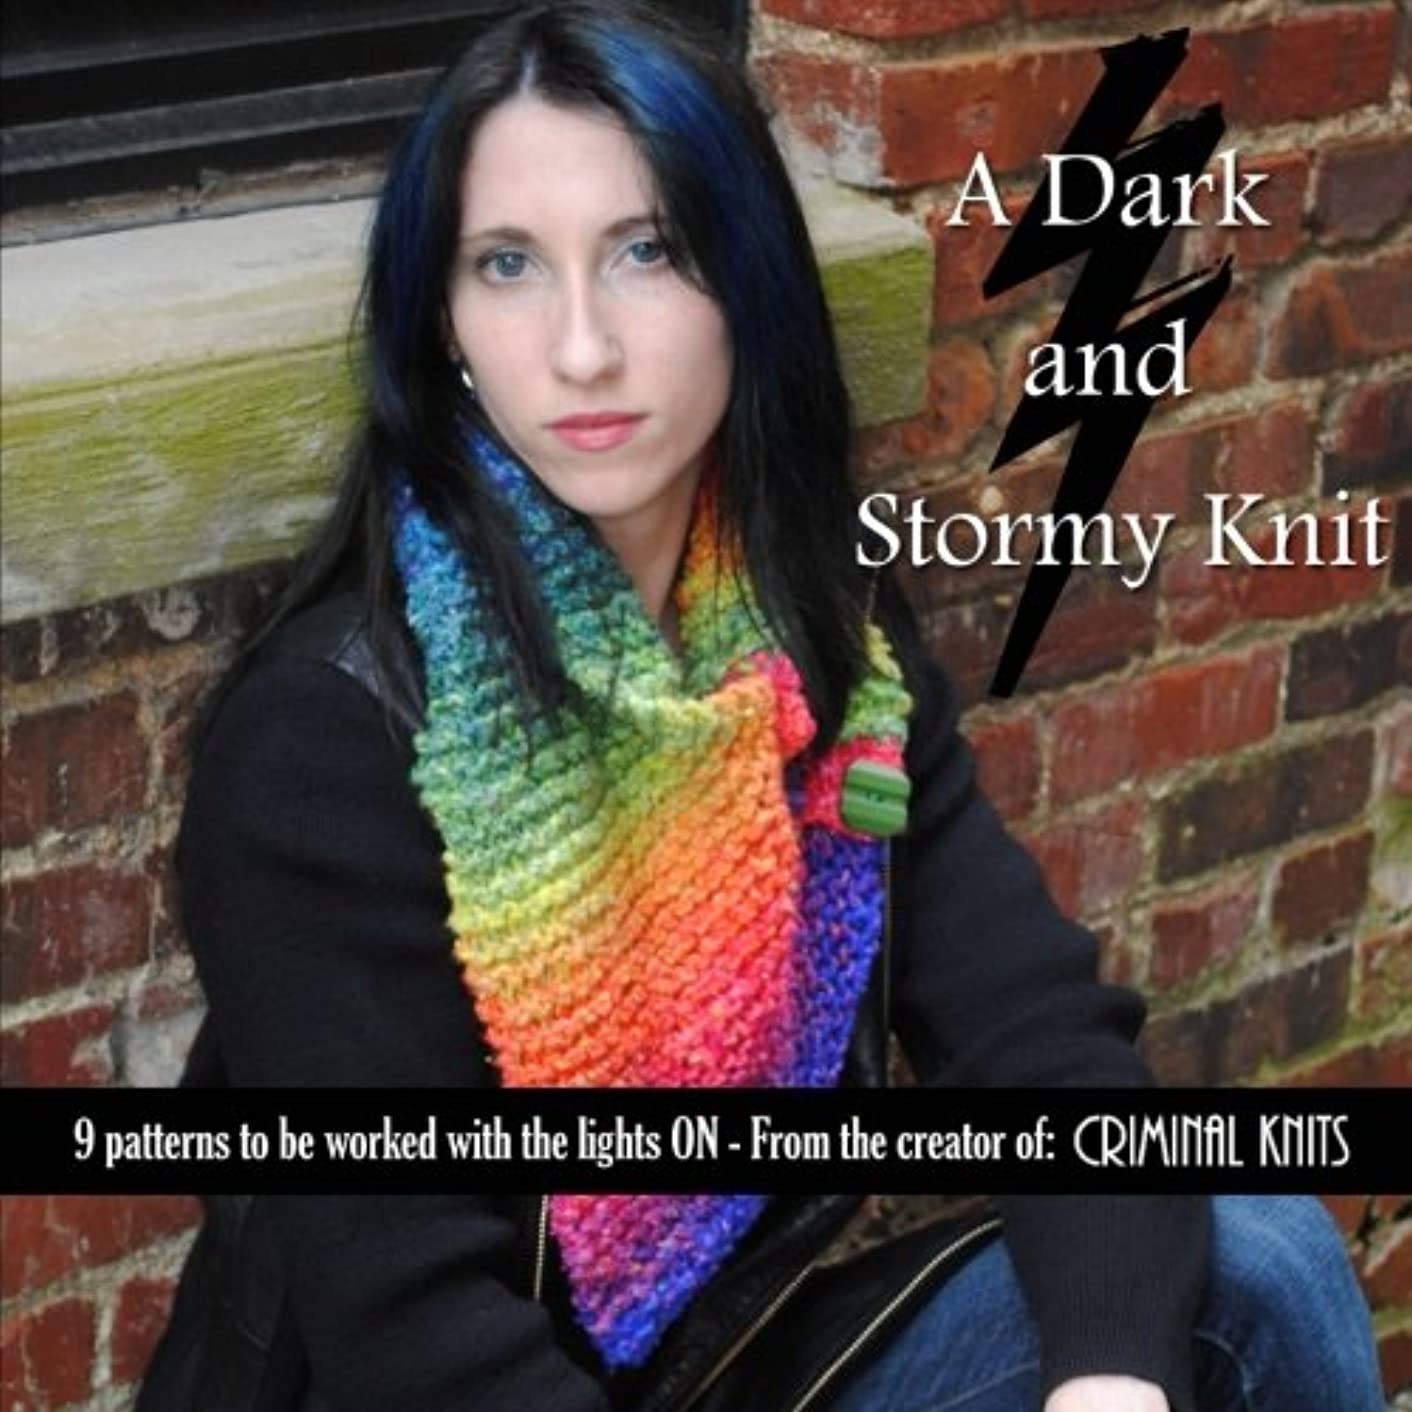 A Dark and Stormy Knit: 9 winter patterns to be worked with the lights ON